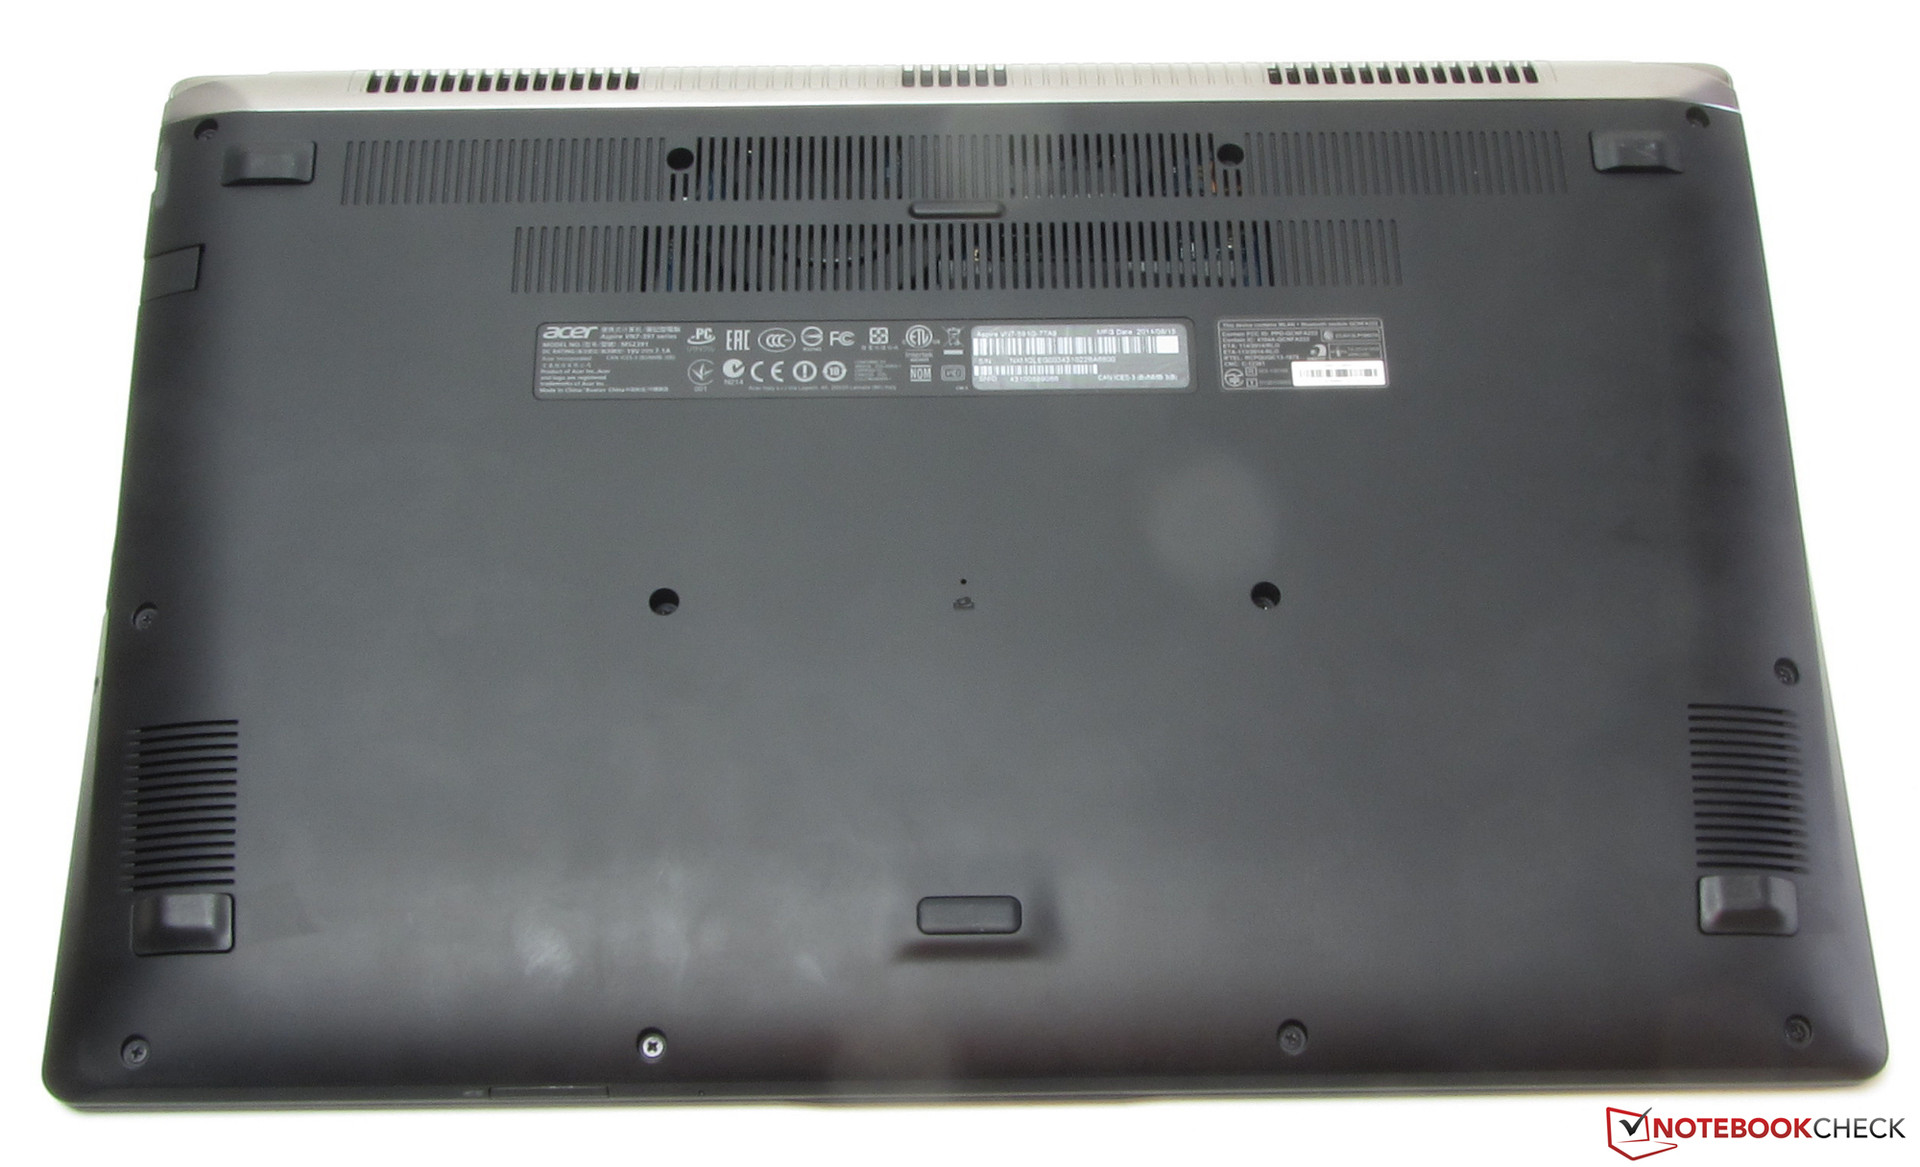 Driver for Acer Aspire VN7-591G Intel Bluetooth